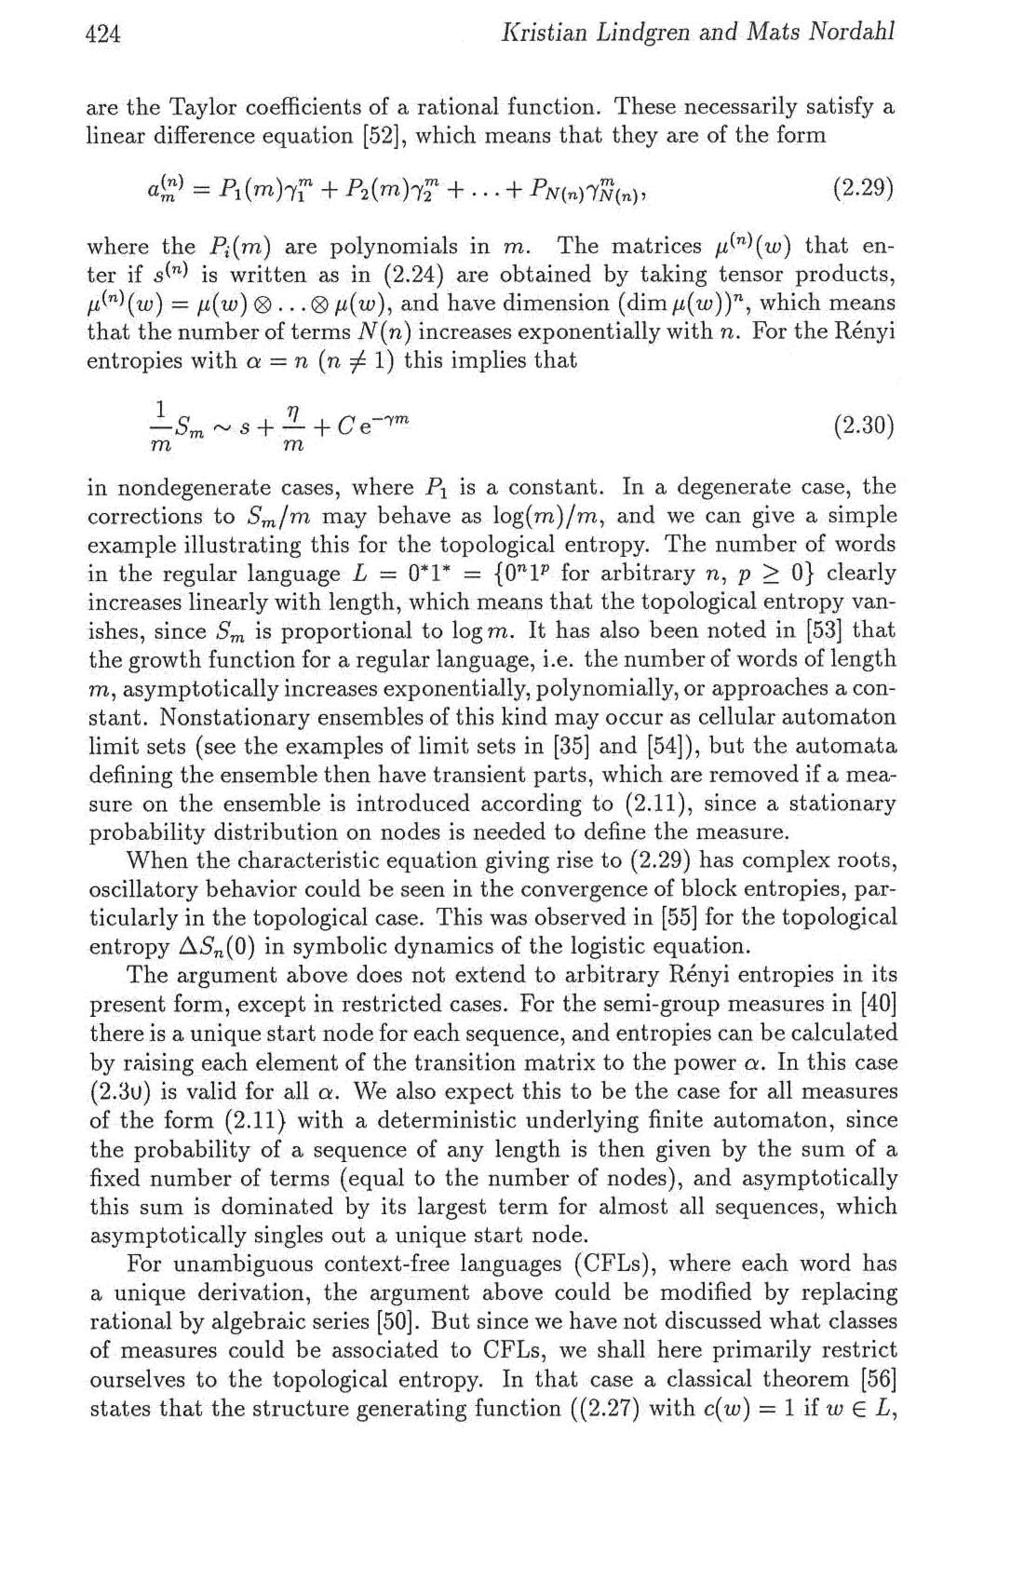 424 Kristian Lindgren and Mats Nordahl are t he Taylor coefficients of a rational function. These necessarily satisfy a linear difference equ ation [52], which means that they are of the form (2.